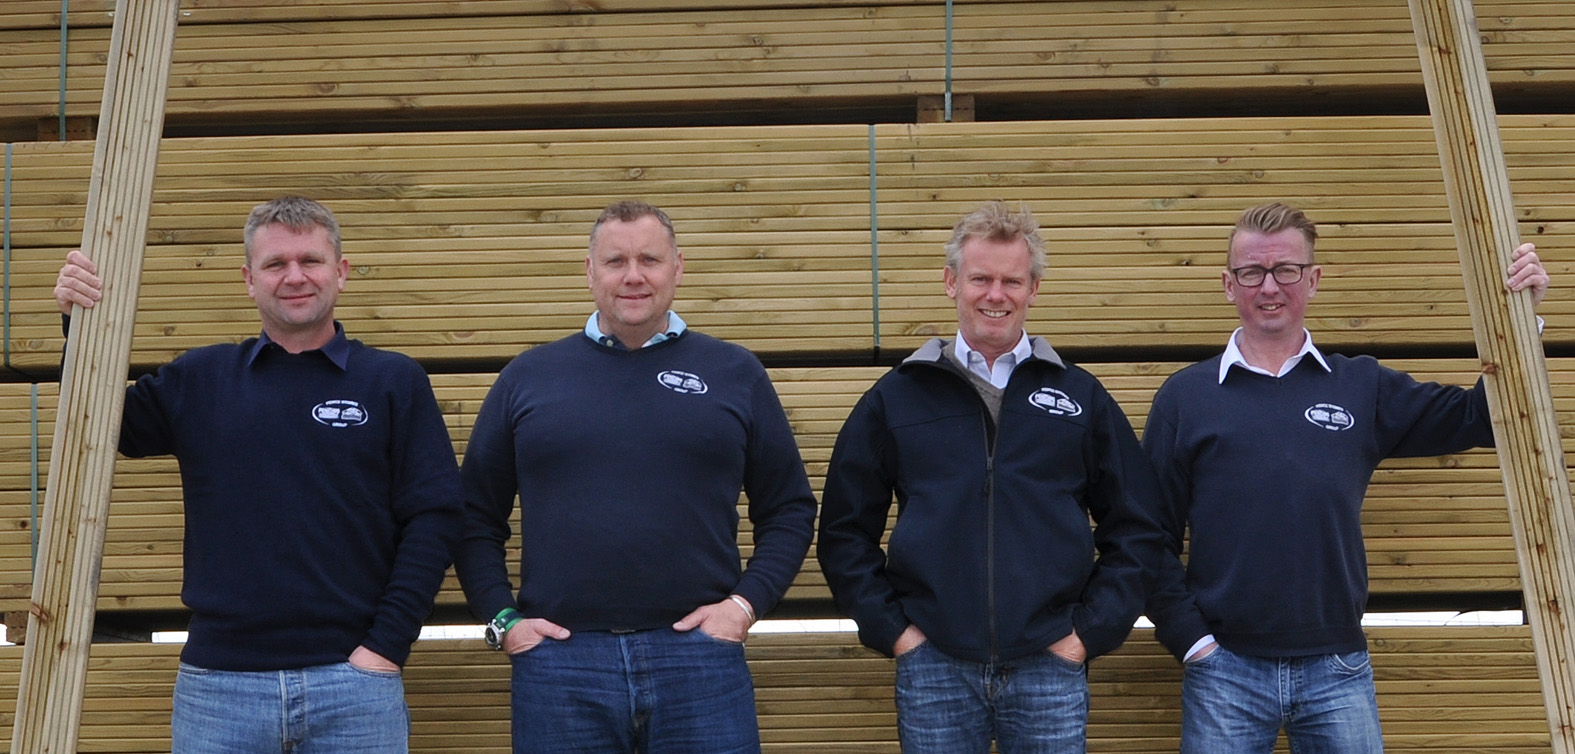 The Fence Stores Group - one of the country's Top 1,000 Companies to Inspire Britain. Directors left to right: Mark Rossiter, Steve Toomer, Steve Randall and Miles Thompson.